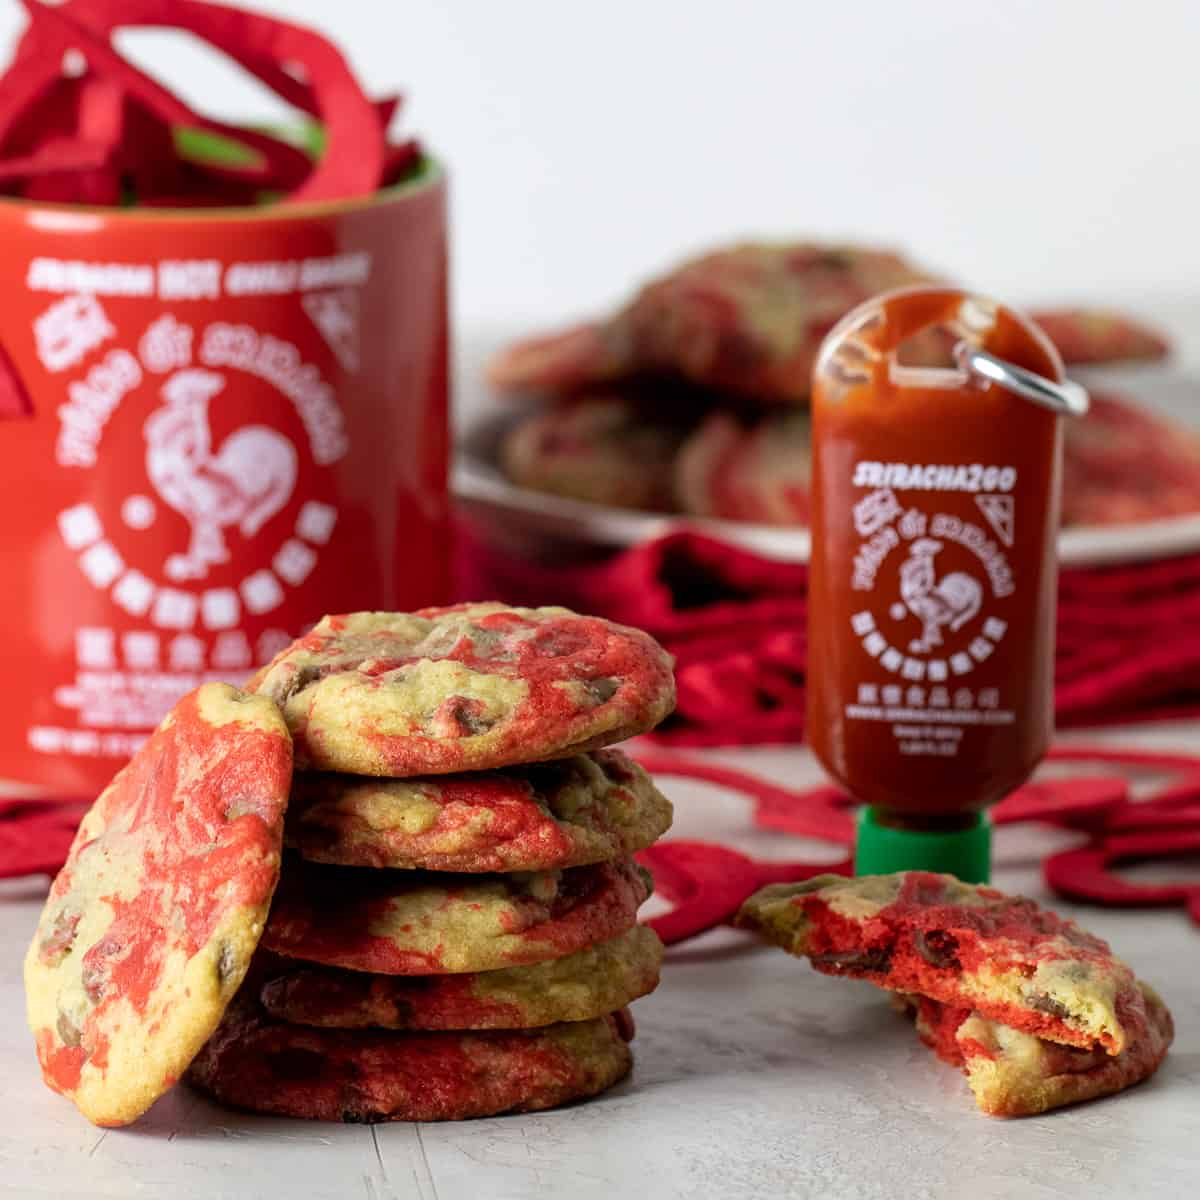 A stack of cookies next to a mug and bottle of Sriracha sauce